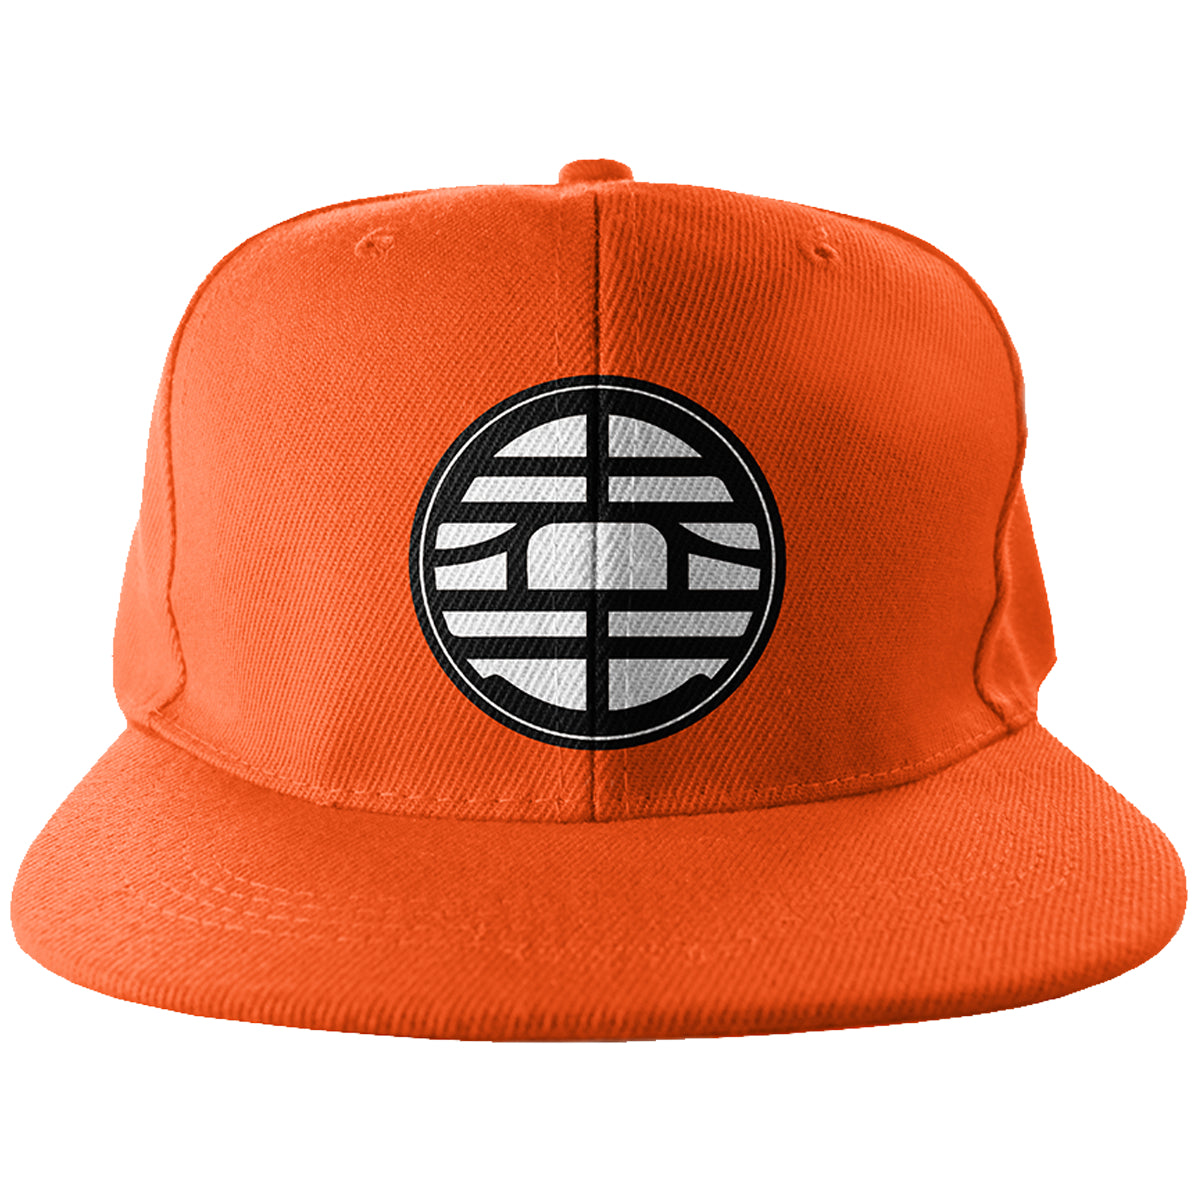 King Kai Snapback - Trendy Gear-Orange-Embroidery - 1